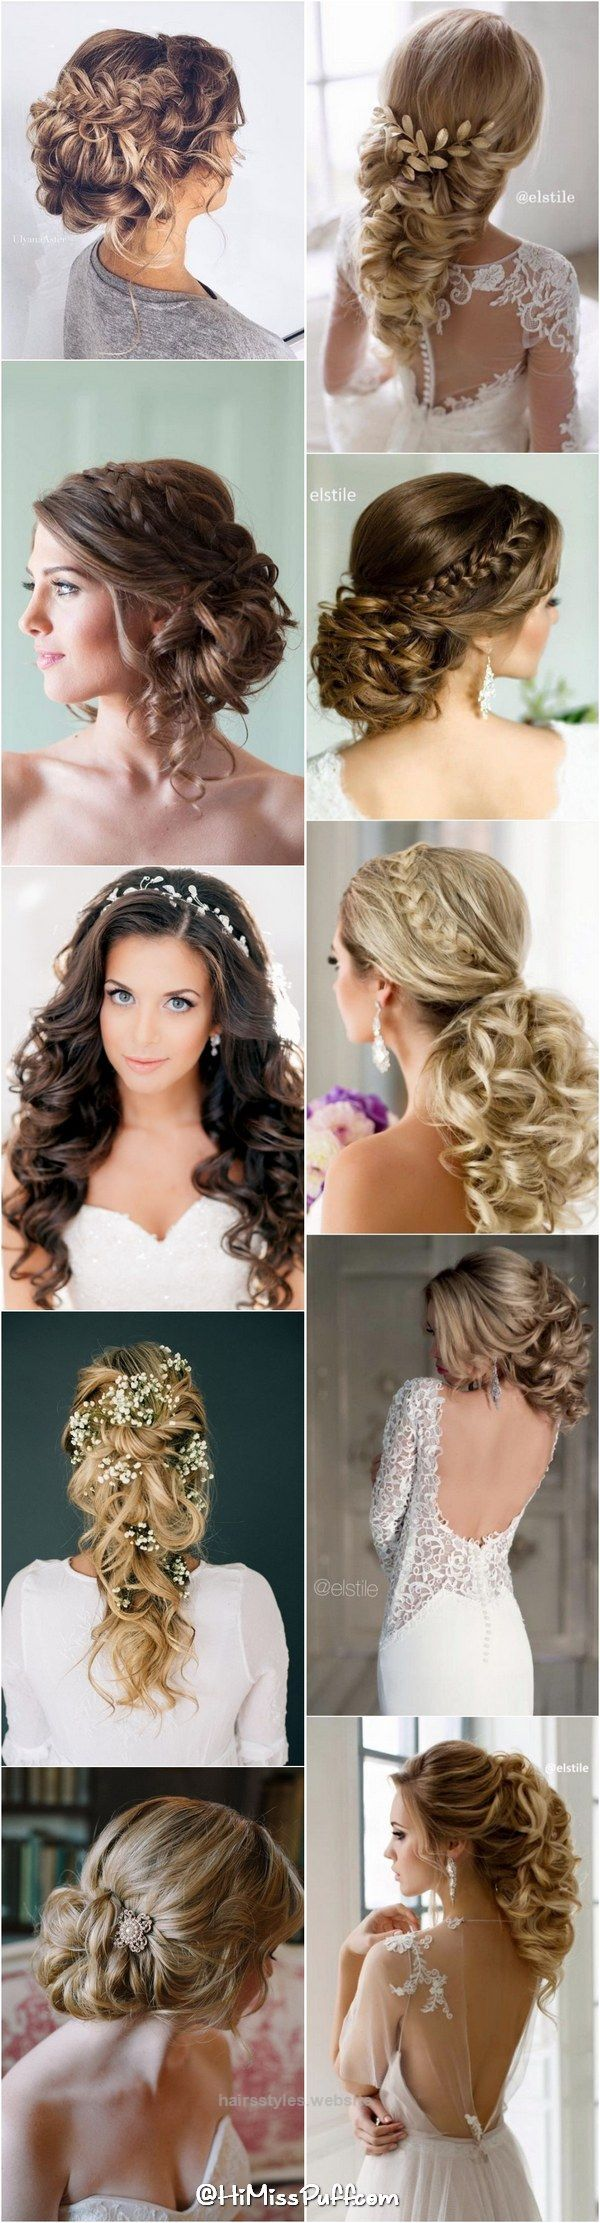 Check it out 200 Bridal Wedding Hairstyles for Long Hair That Will Inspire / www.himisspuff.co…  The post  200 Bridal Wedding Hairstyles for Long Hair That Will Inspire / www.himisspuff.c…  appeared ..